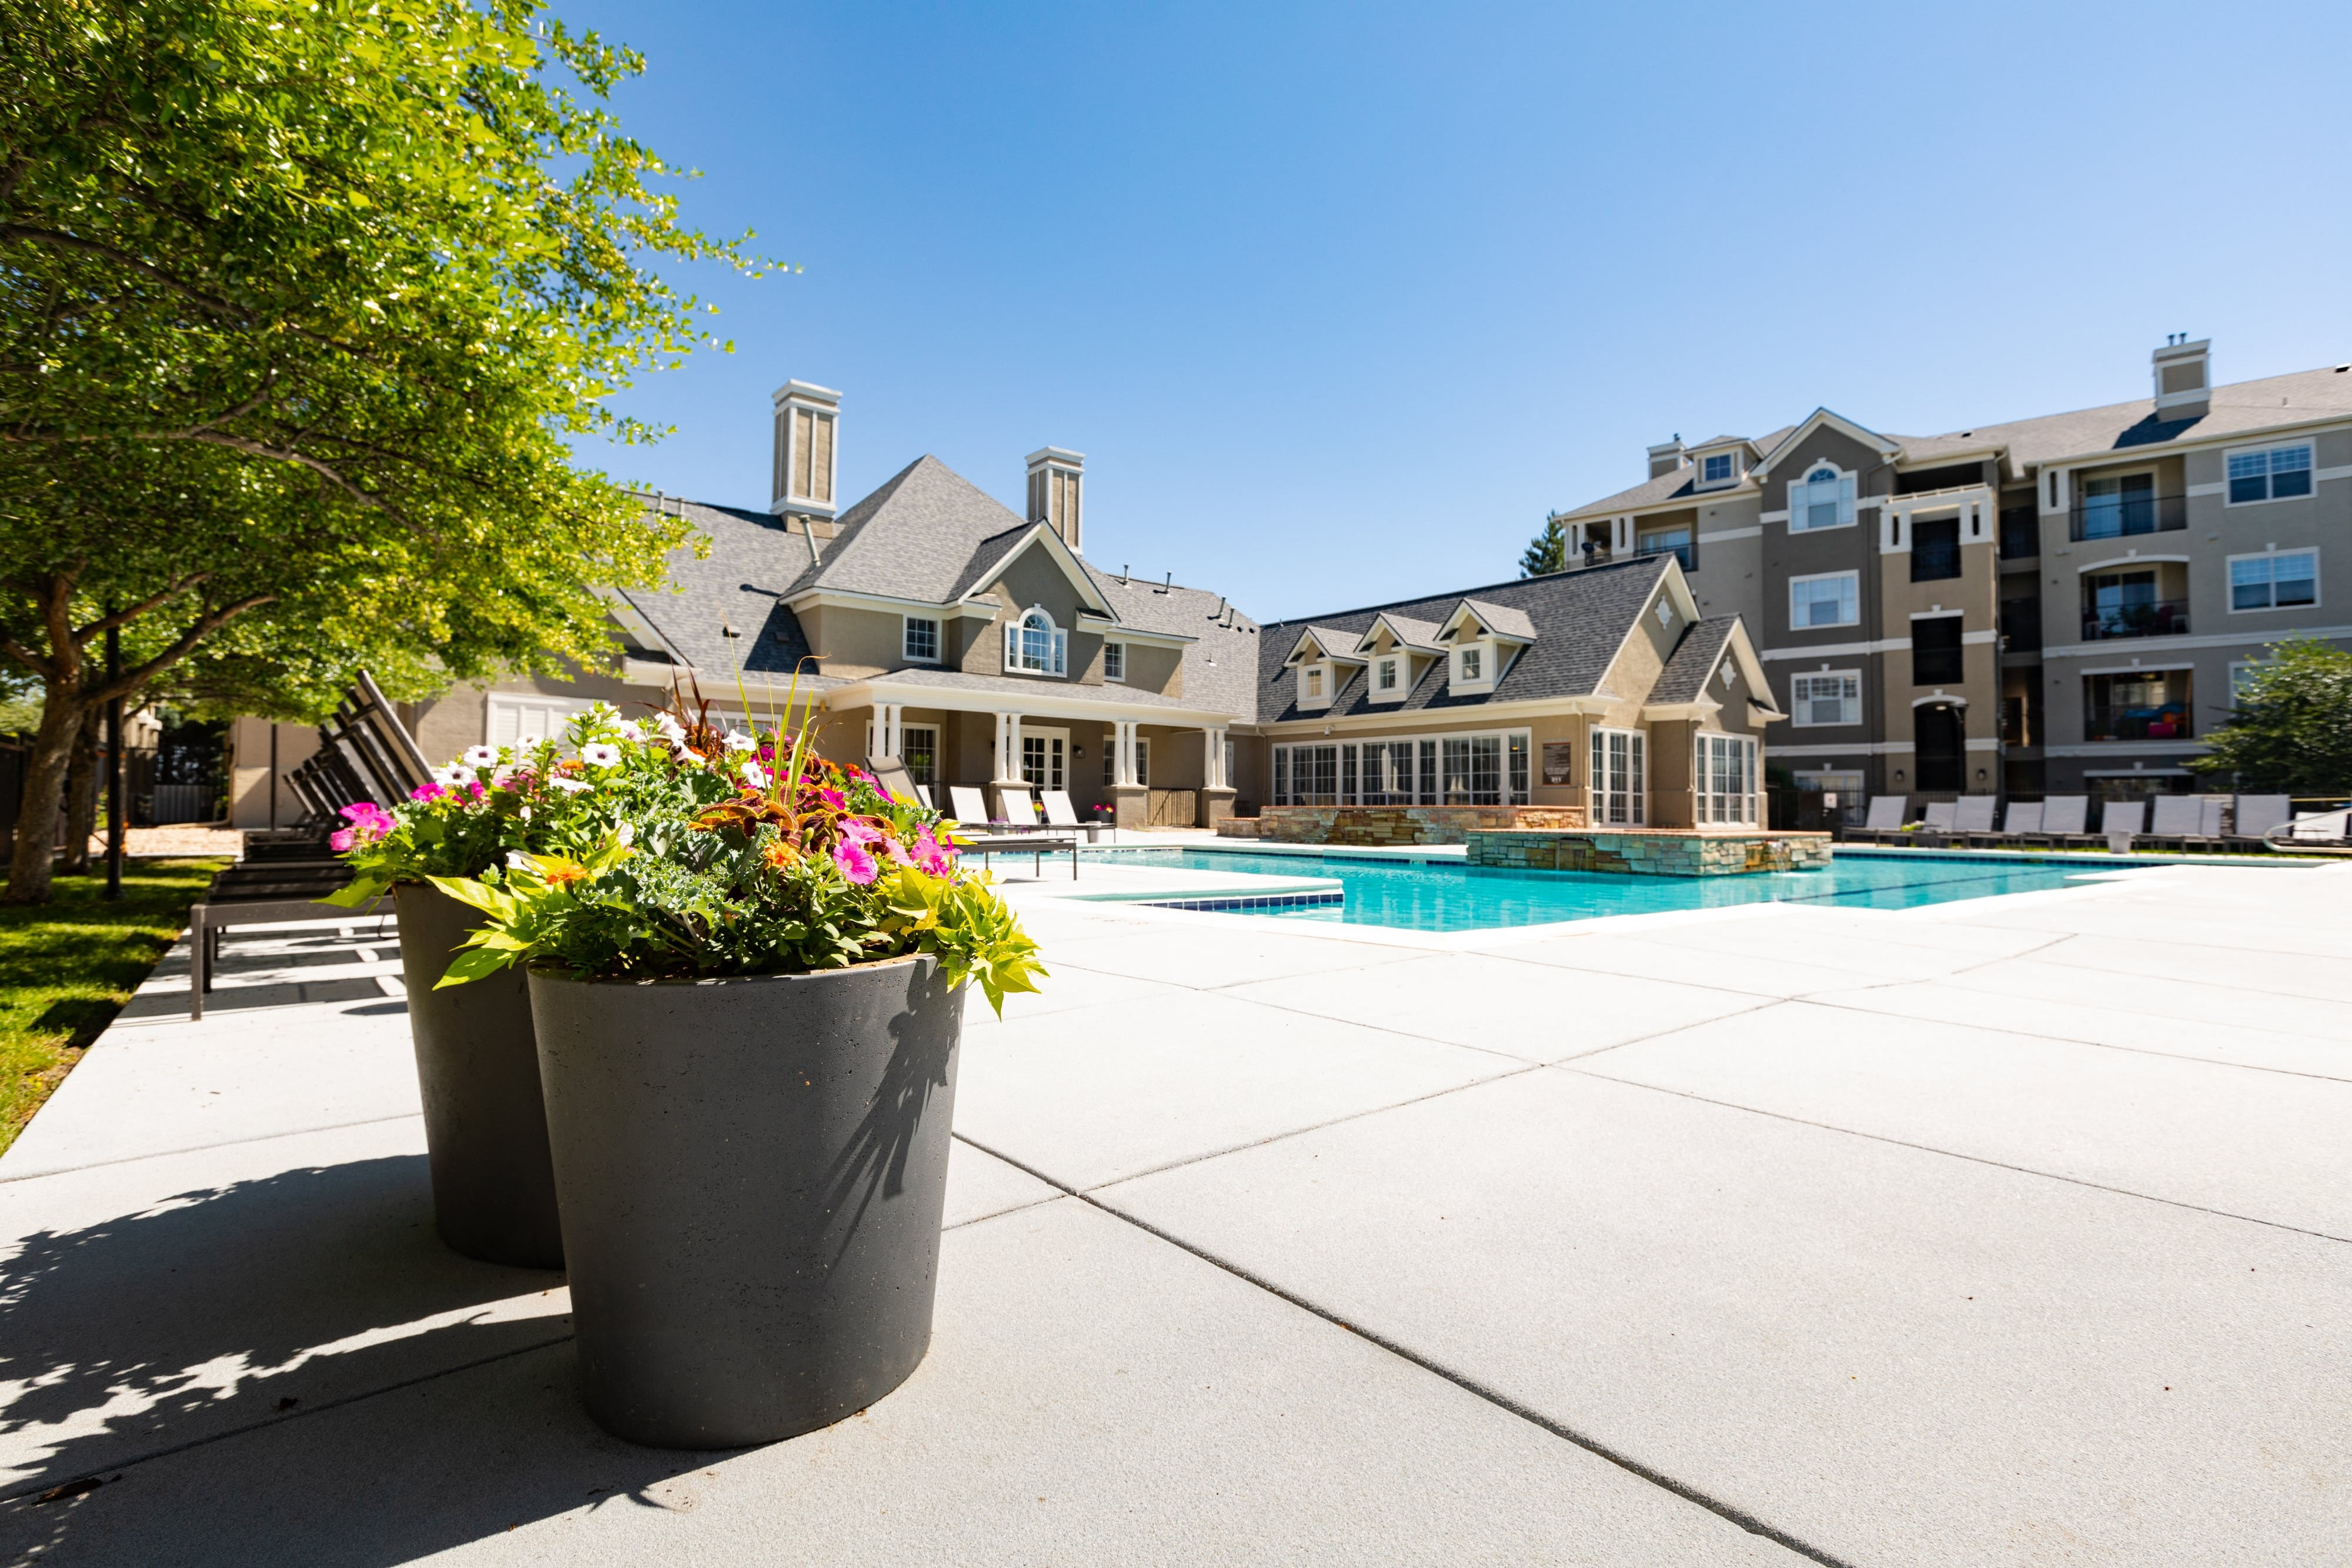 outdoor pool and grill area | Greenwood Plaza Apartments in Centennial, CO